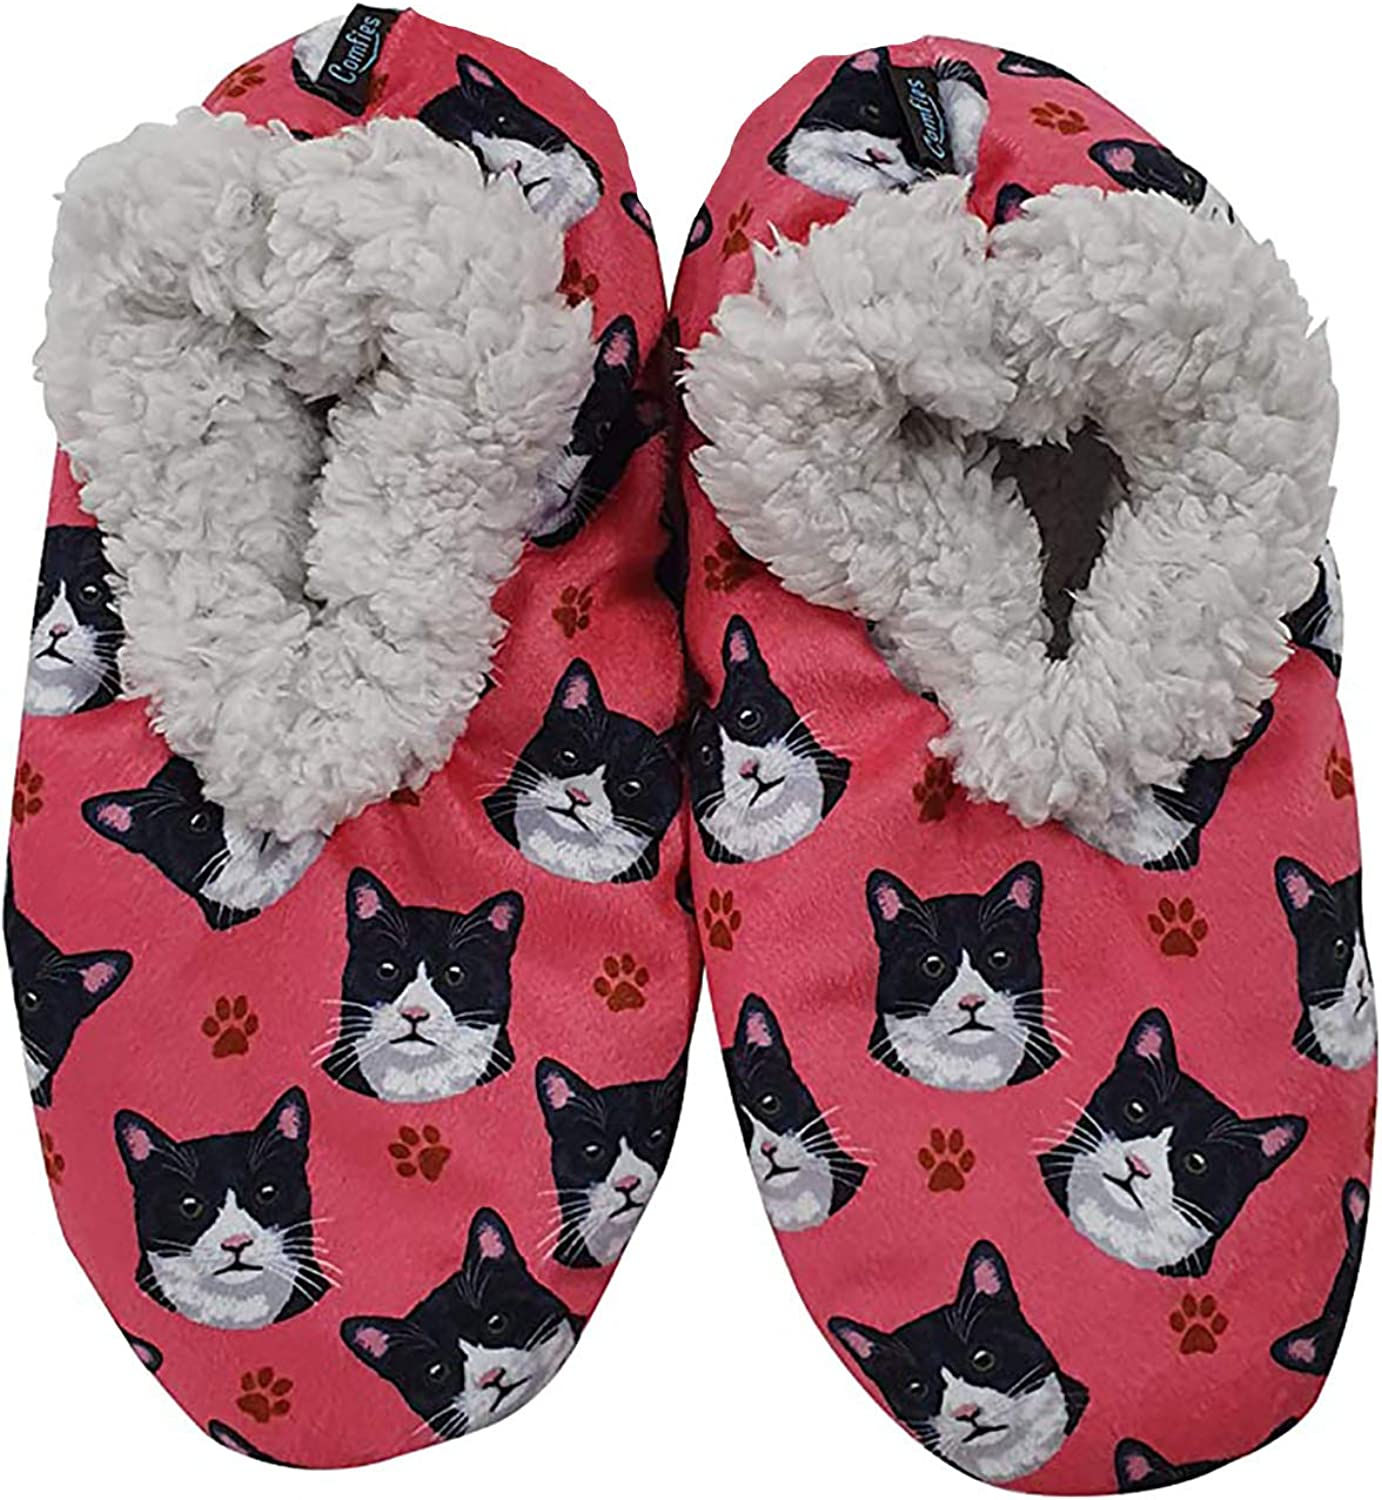 Black and White Cat Super Soft Women's Slippers - One Size Fits Most - Cozy House Slippers - Non Skid Bottom - perfect for Black and White Cat gifts